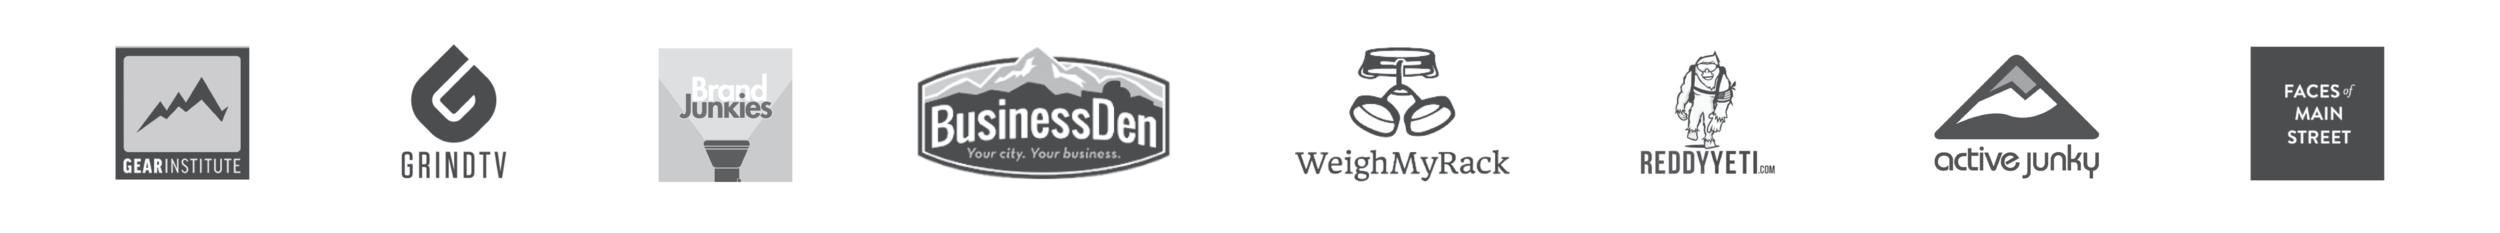 featured-in-logos.png